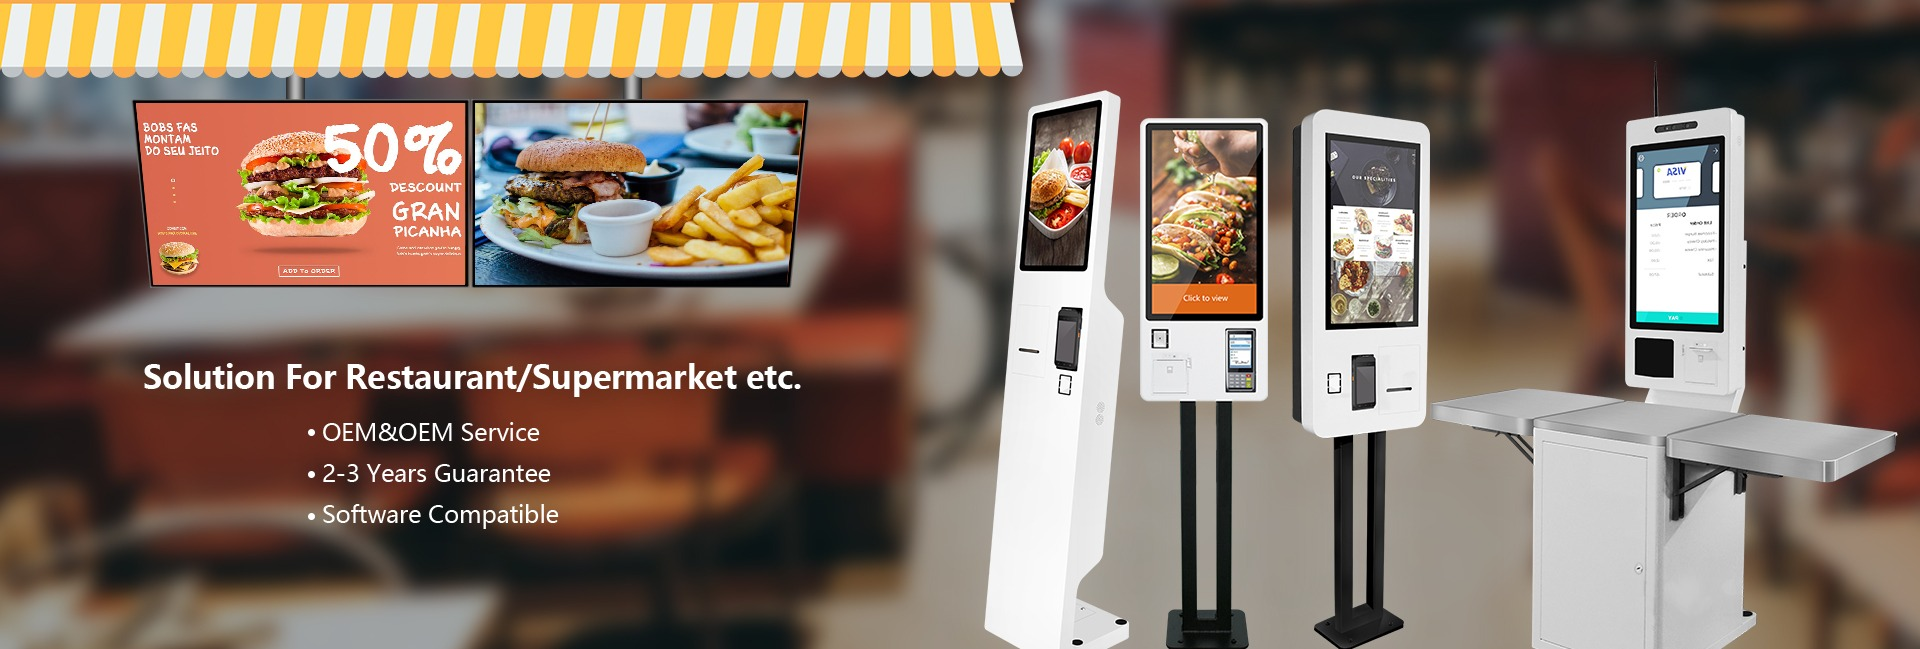 ordering system Digital Screens and self order kiosk